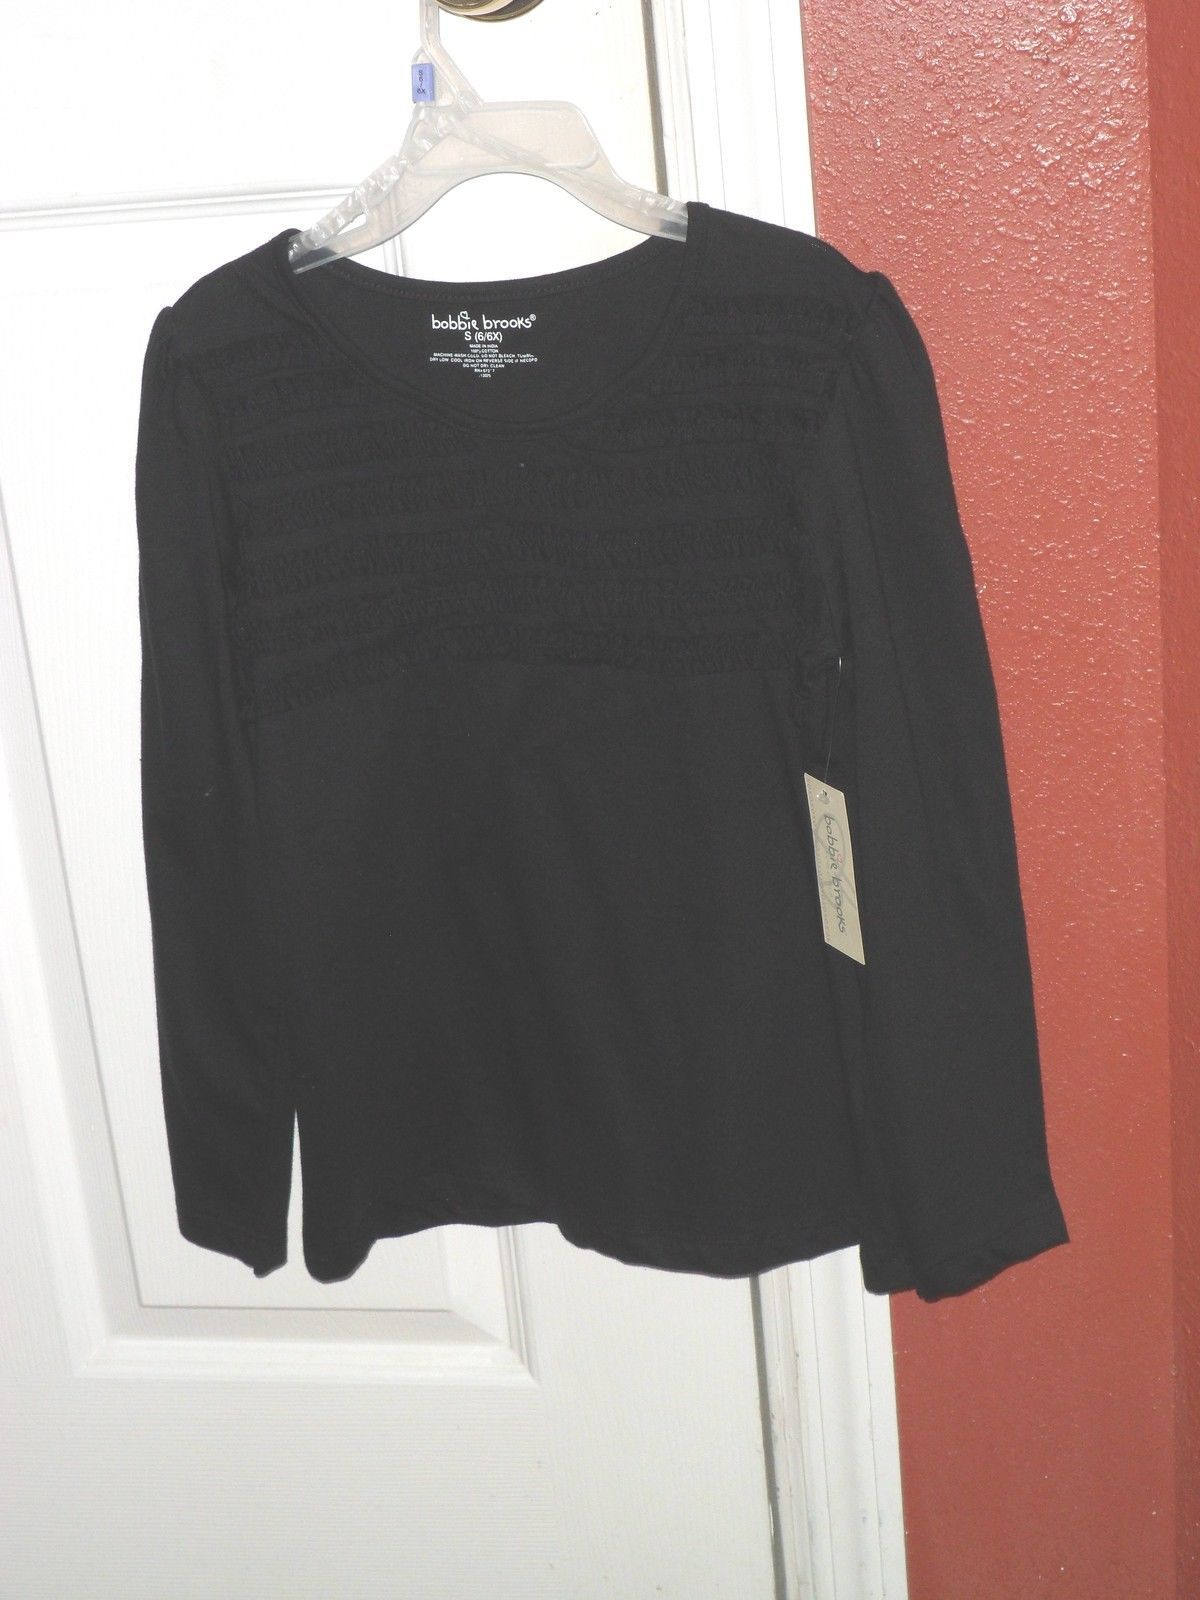 4d1dc3e5ea5a8 BOBBIE BROOKS KNIT TOP SHIRT SIZE M 7 8 BLACK RICK RACK NWT -  9.99